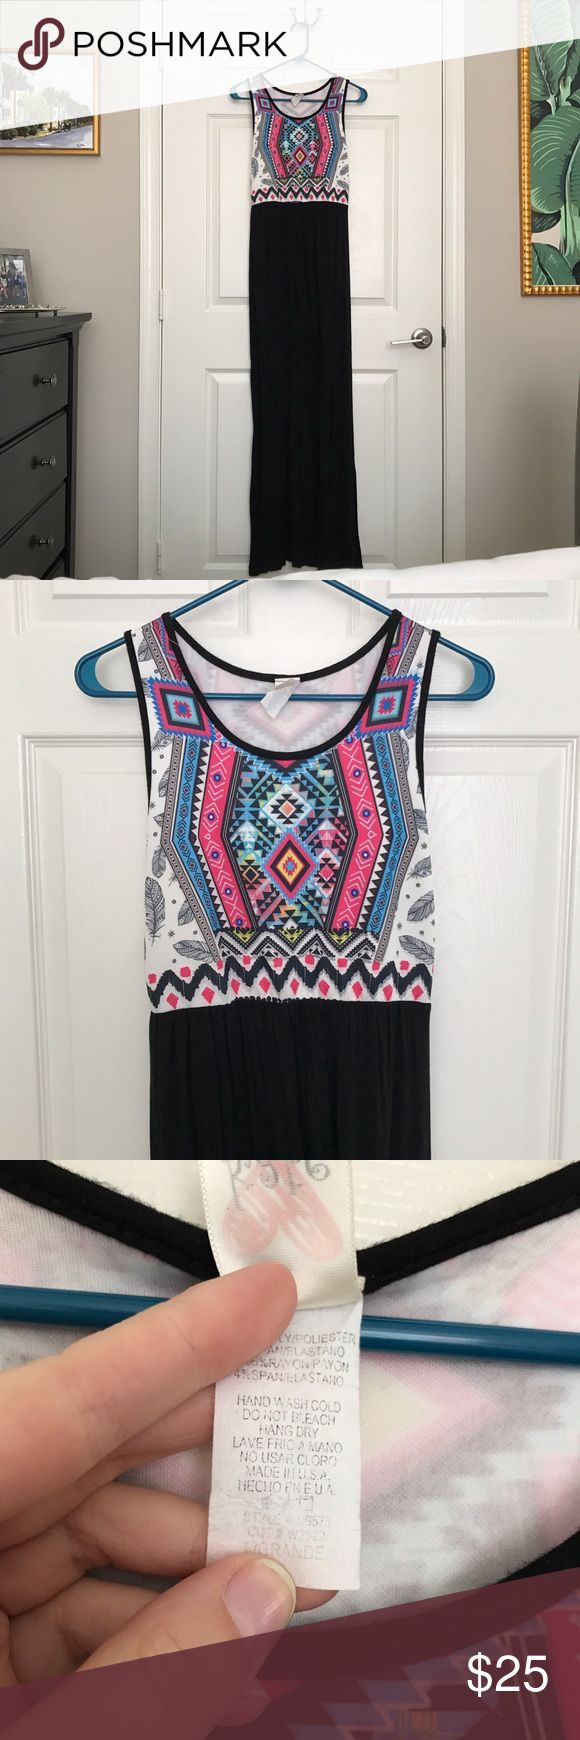 Mint Julep Boutique Tribal Maxi Dress A maxi dress from The Mint Julep Boutique. Would fit a size 8-10. 96% rayon and 4% spandex. The back is in the fourth picture. Material has some stretch. No trades. Mint Julep Boutique Dresses Maxi